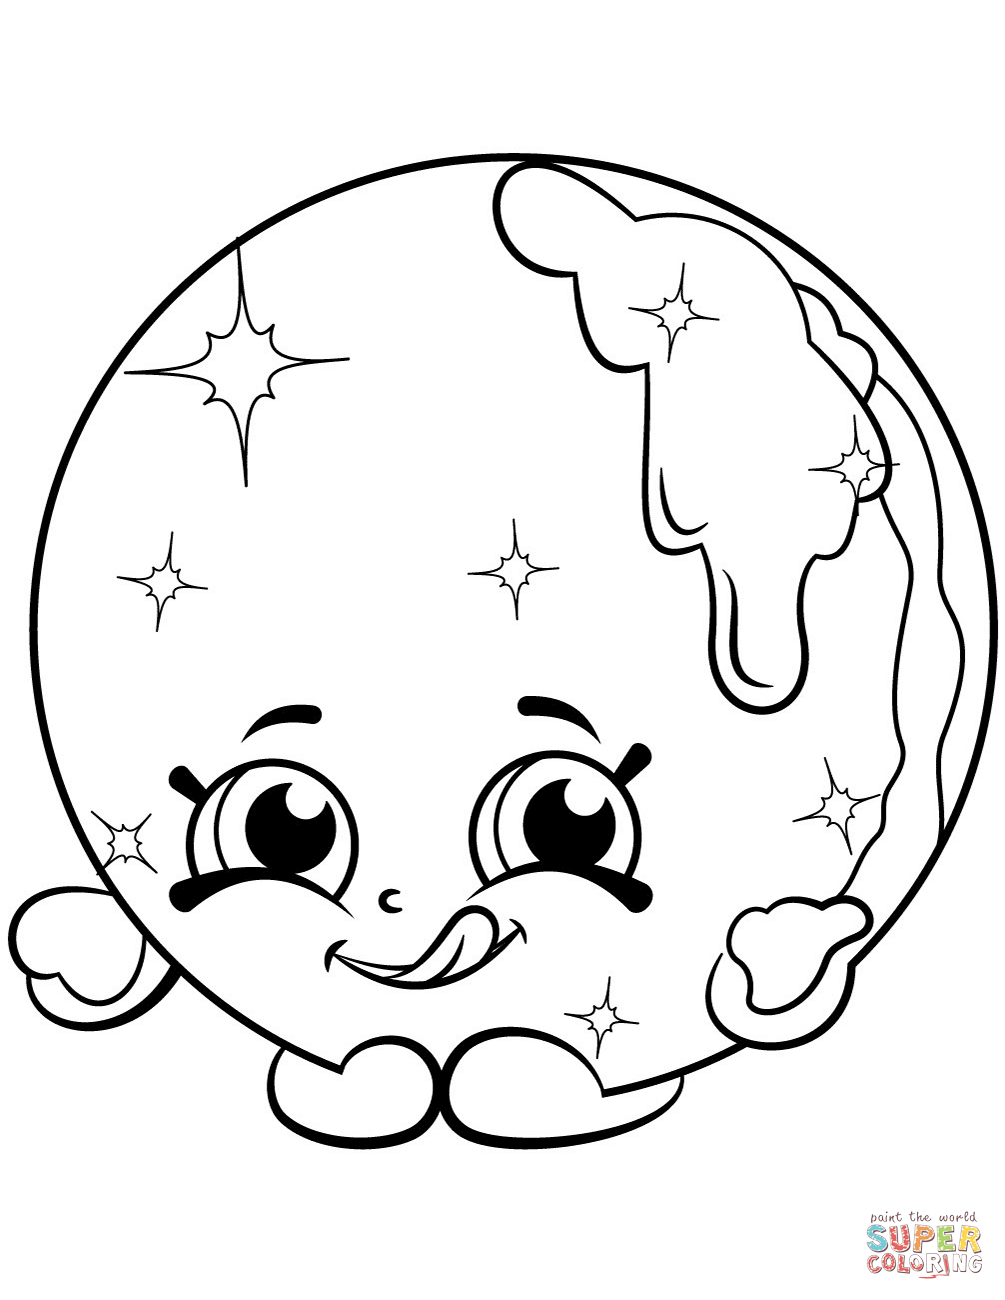 1005x1300 Shopkins Season 2 Coloring Pages Free Coloring Pages